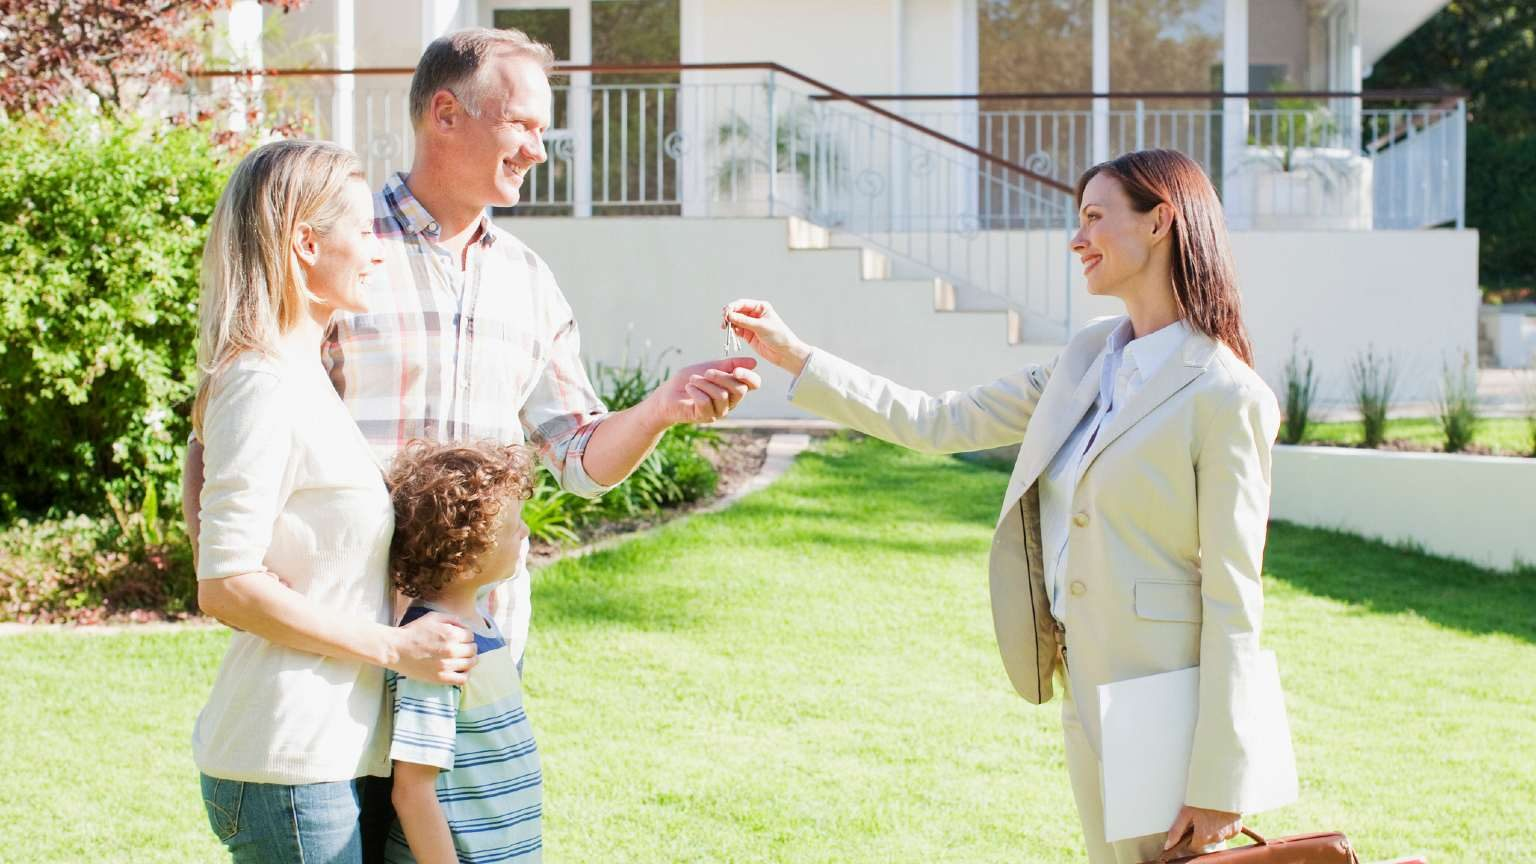 California Family Buying House